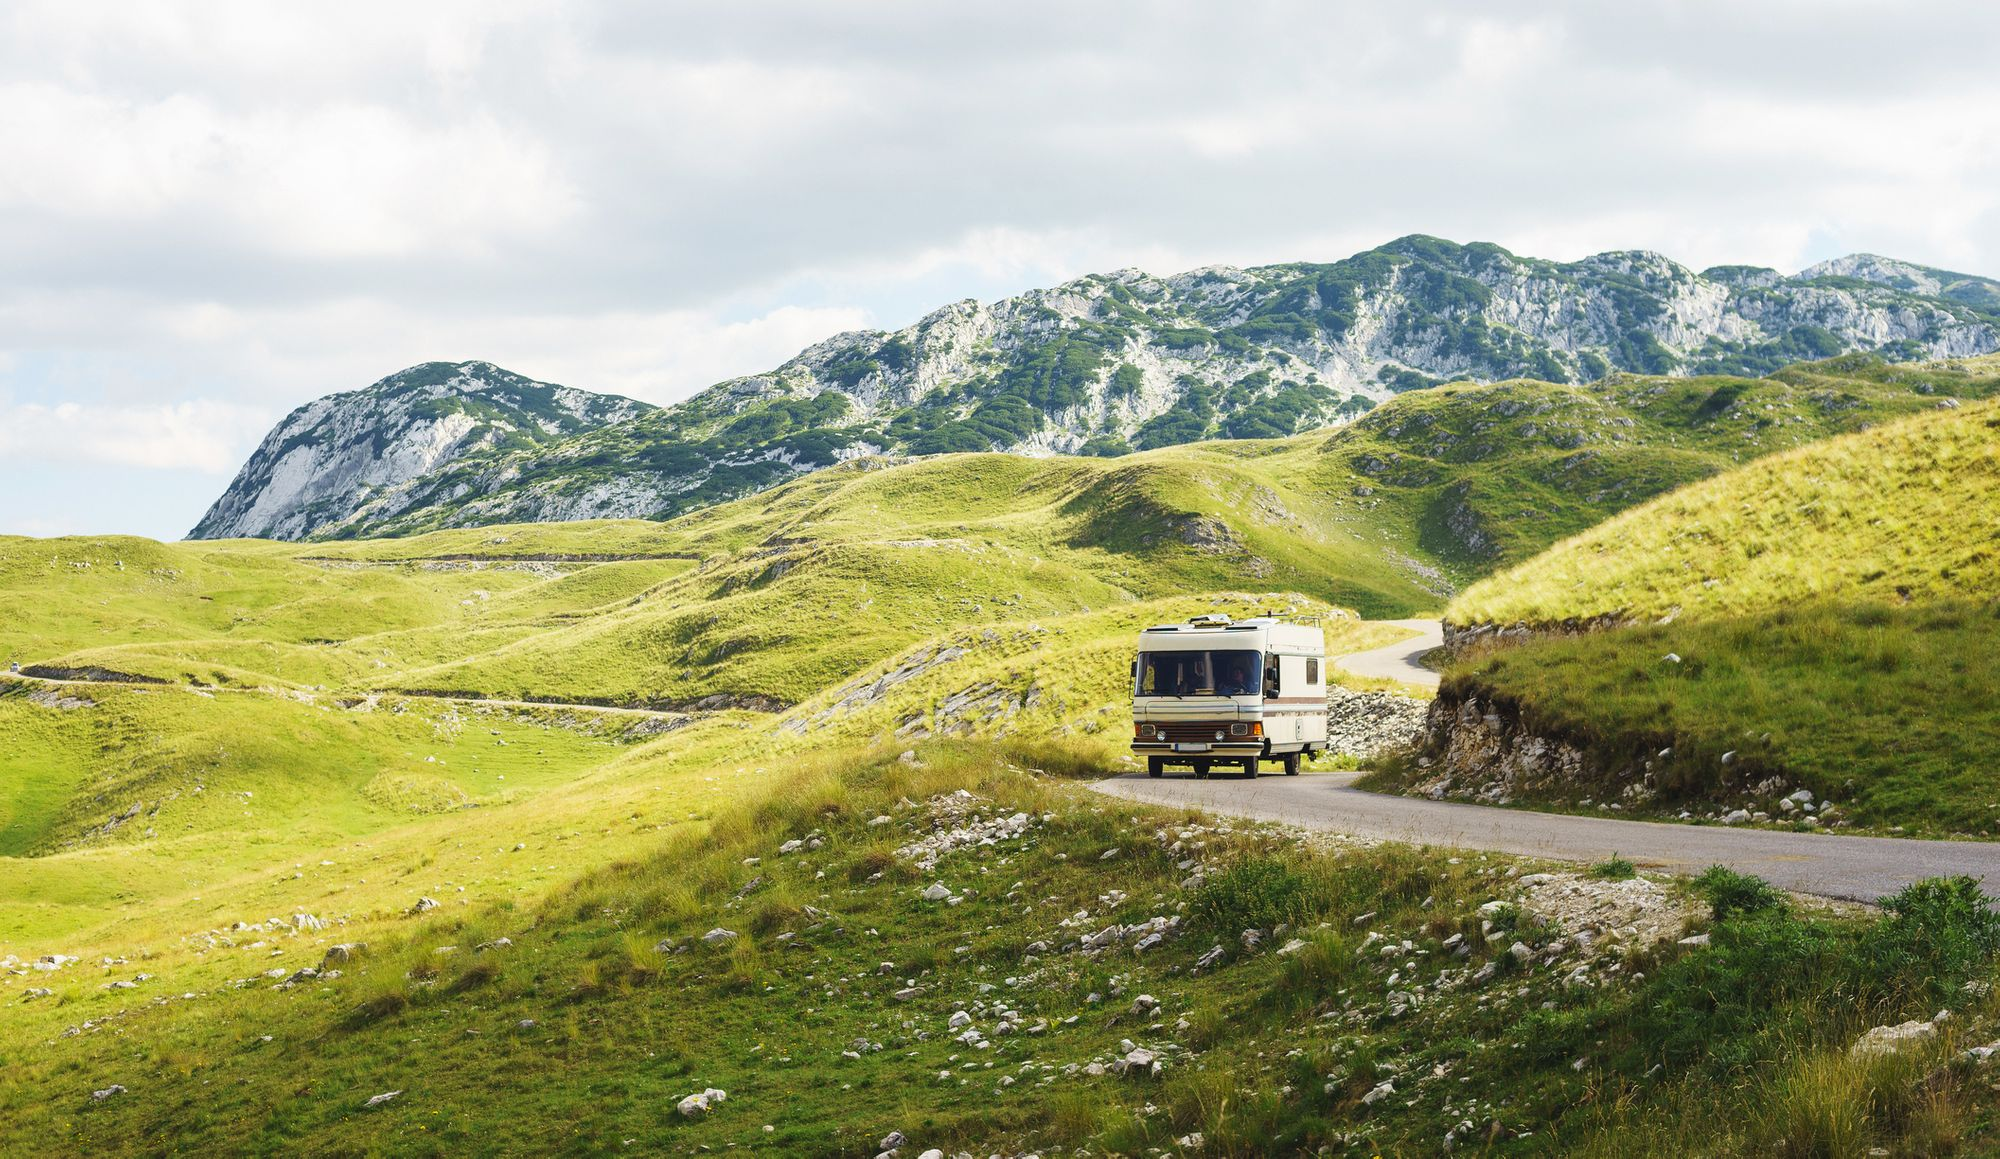 From Renting to Owning with RVezy: Free RVs!